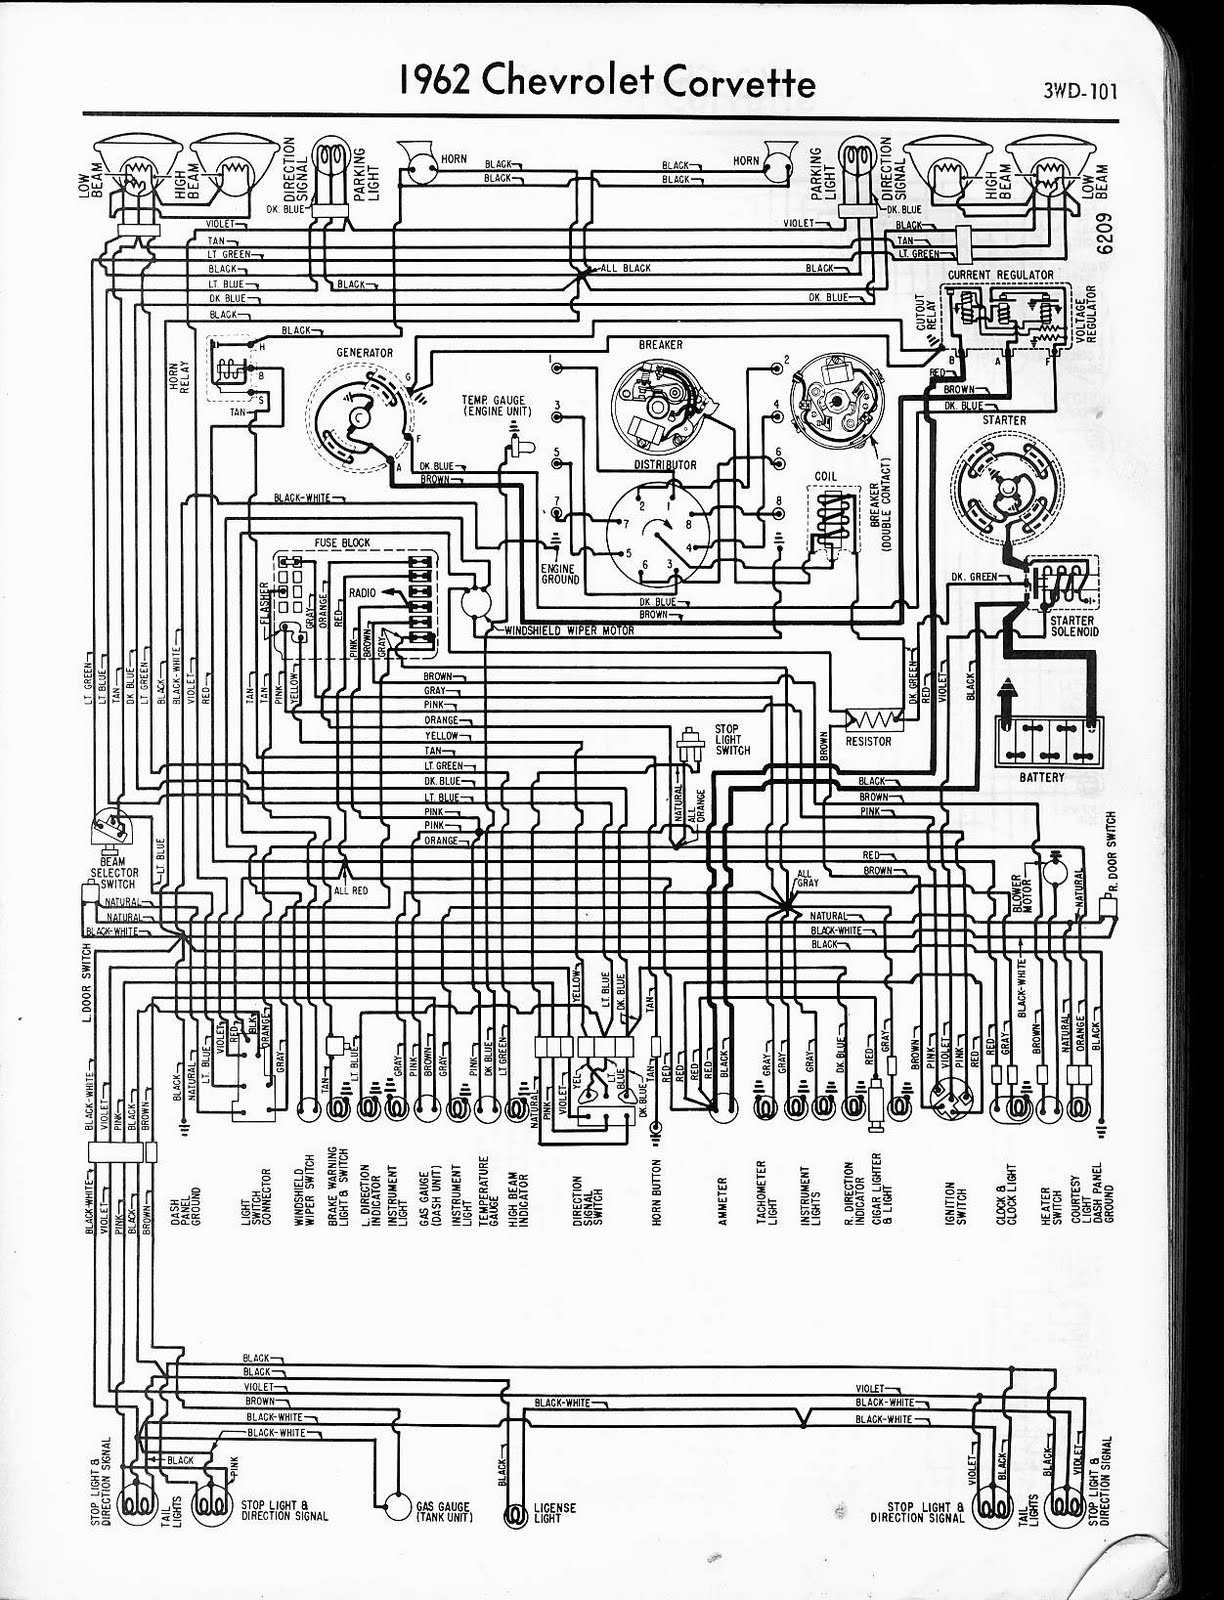 Free Wiring Diagram For Cars from 2.bp.blogspot.com